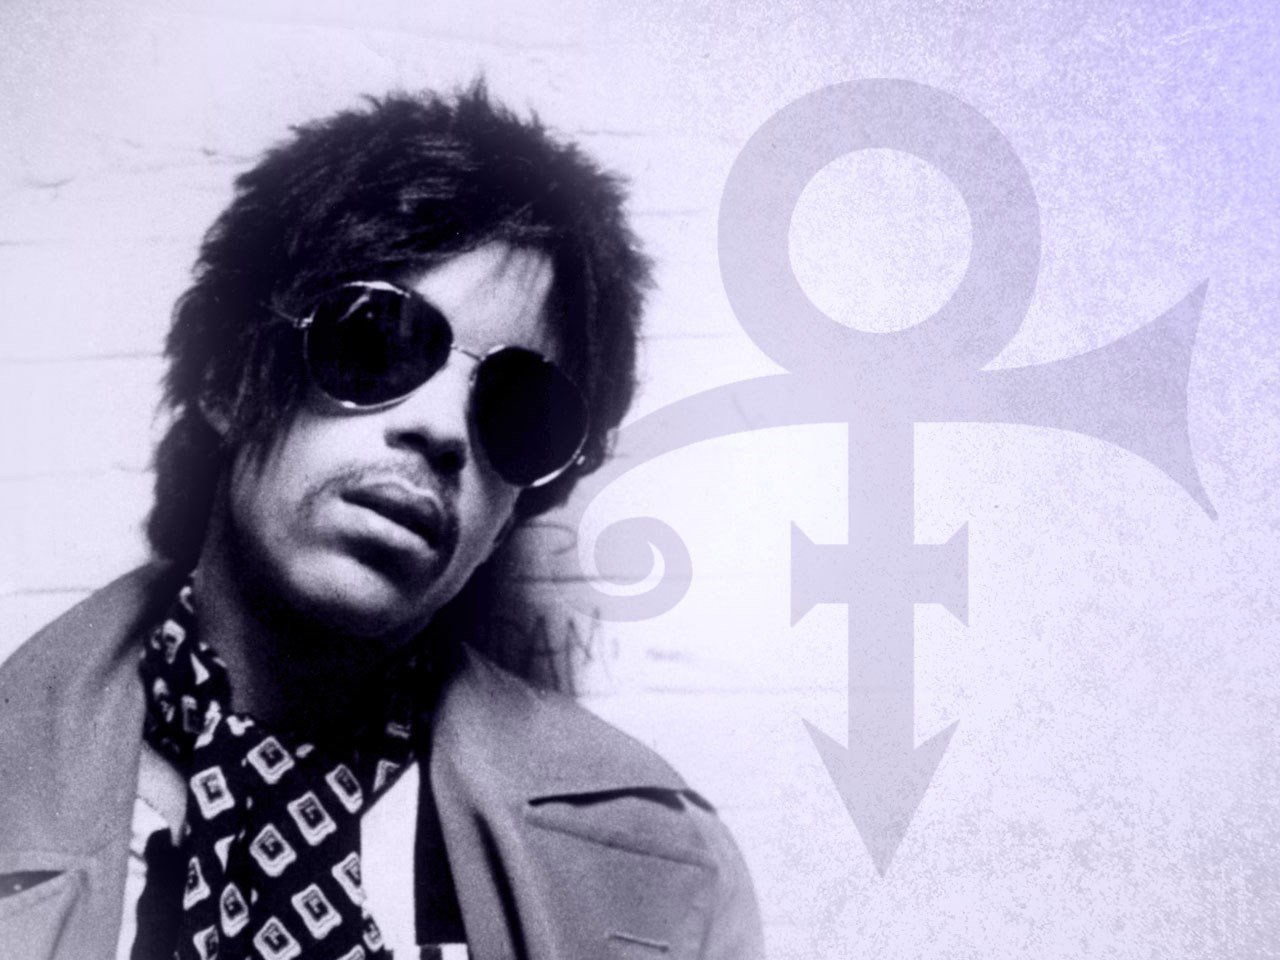 Prince's Death Attributed to Counterfeit Pills